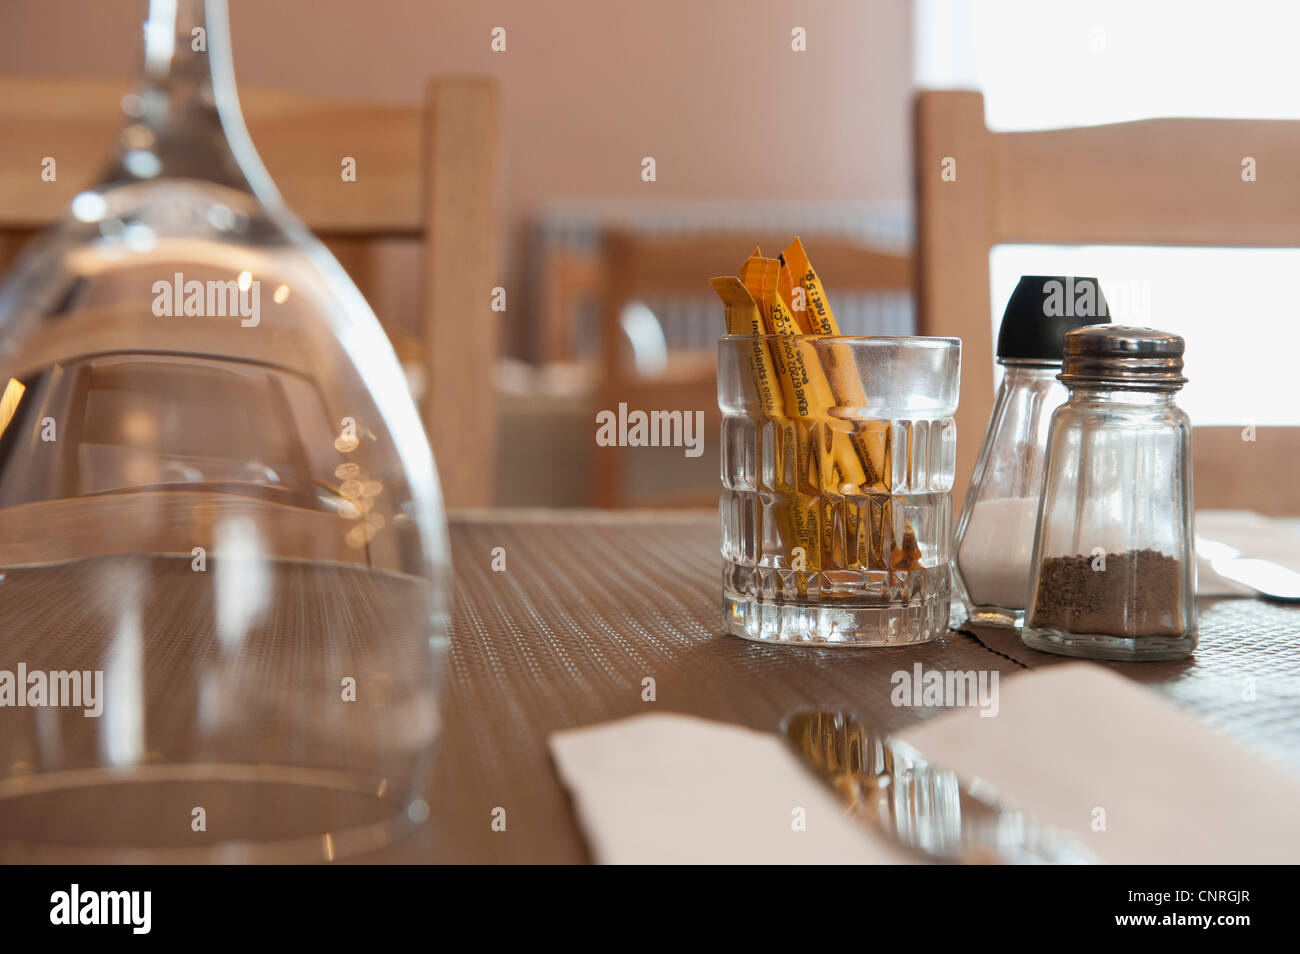 Place setting, selective focus - Stock Image